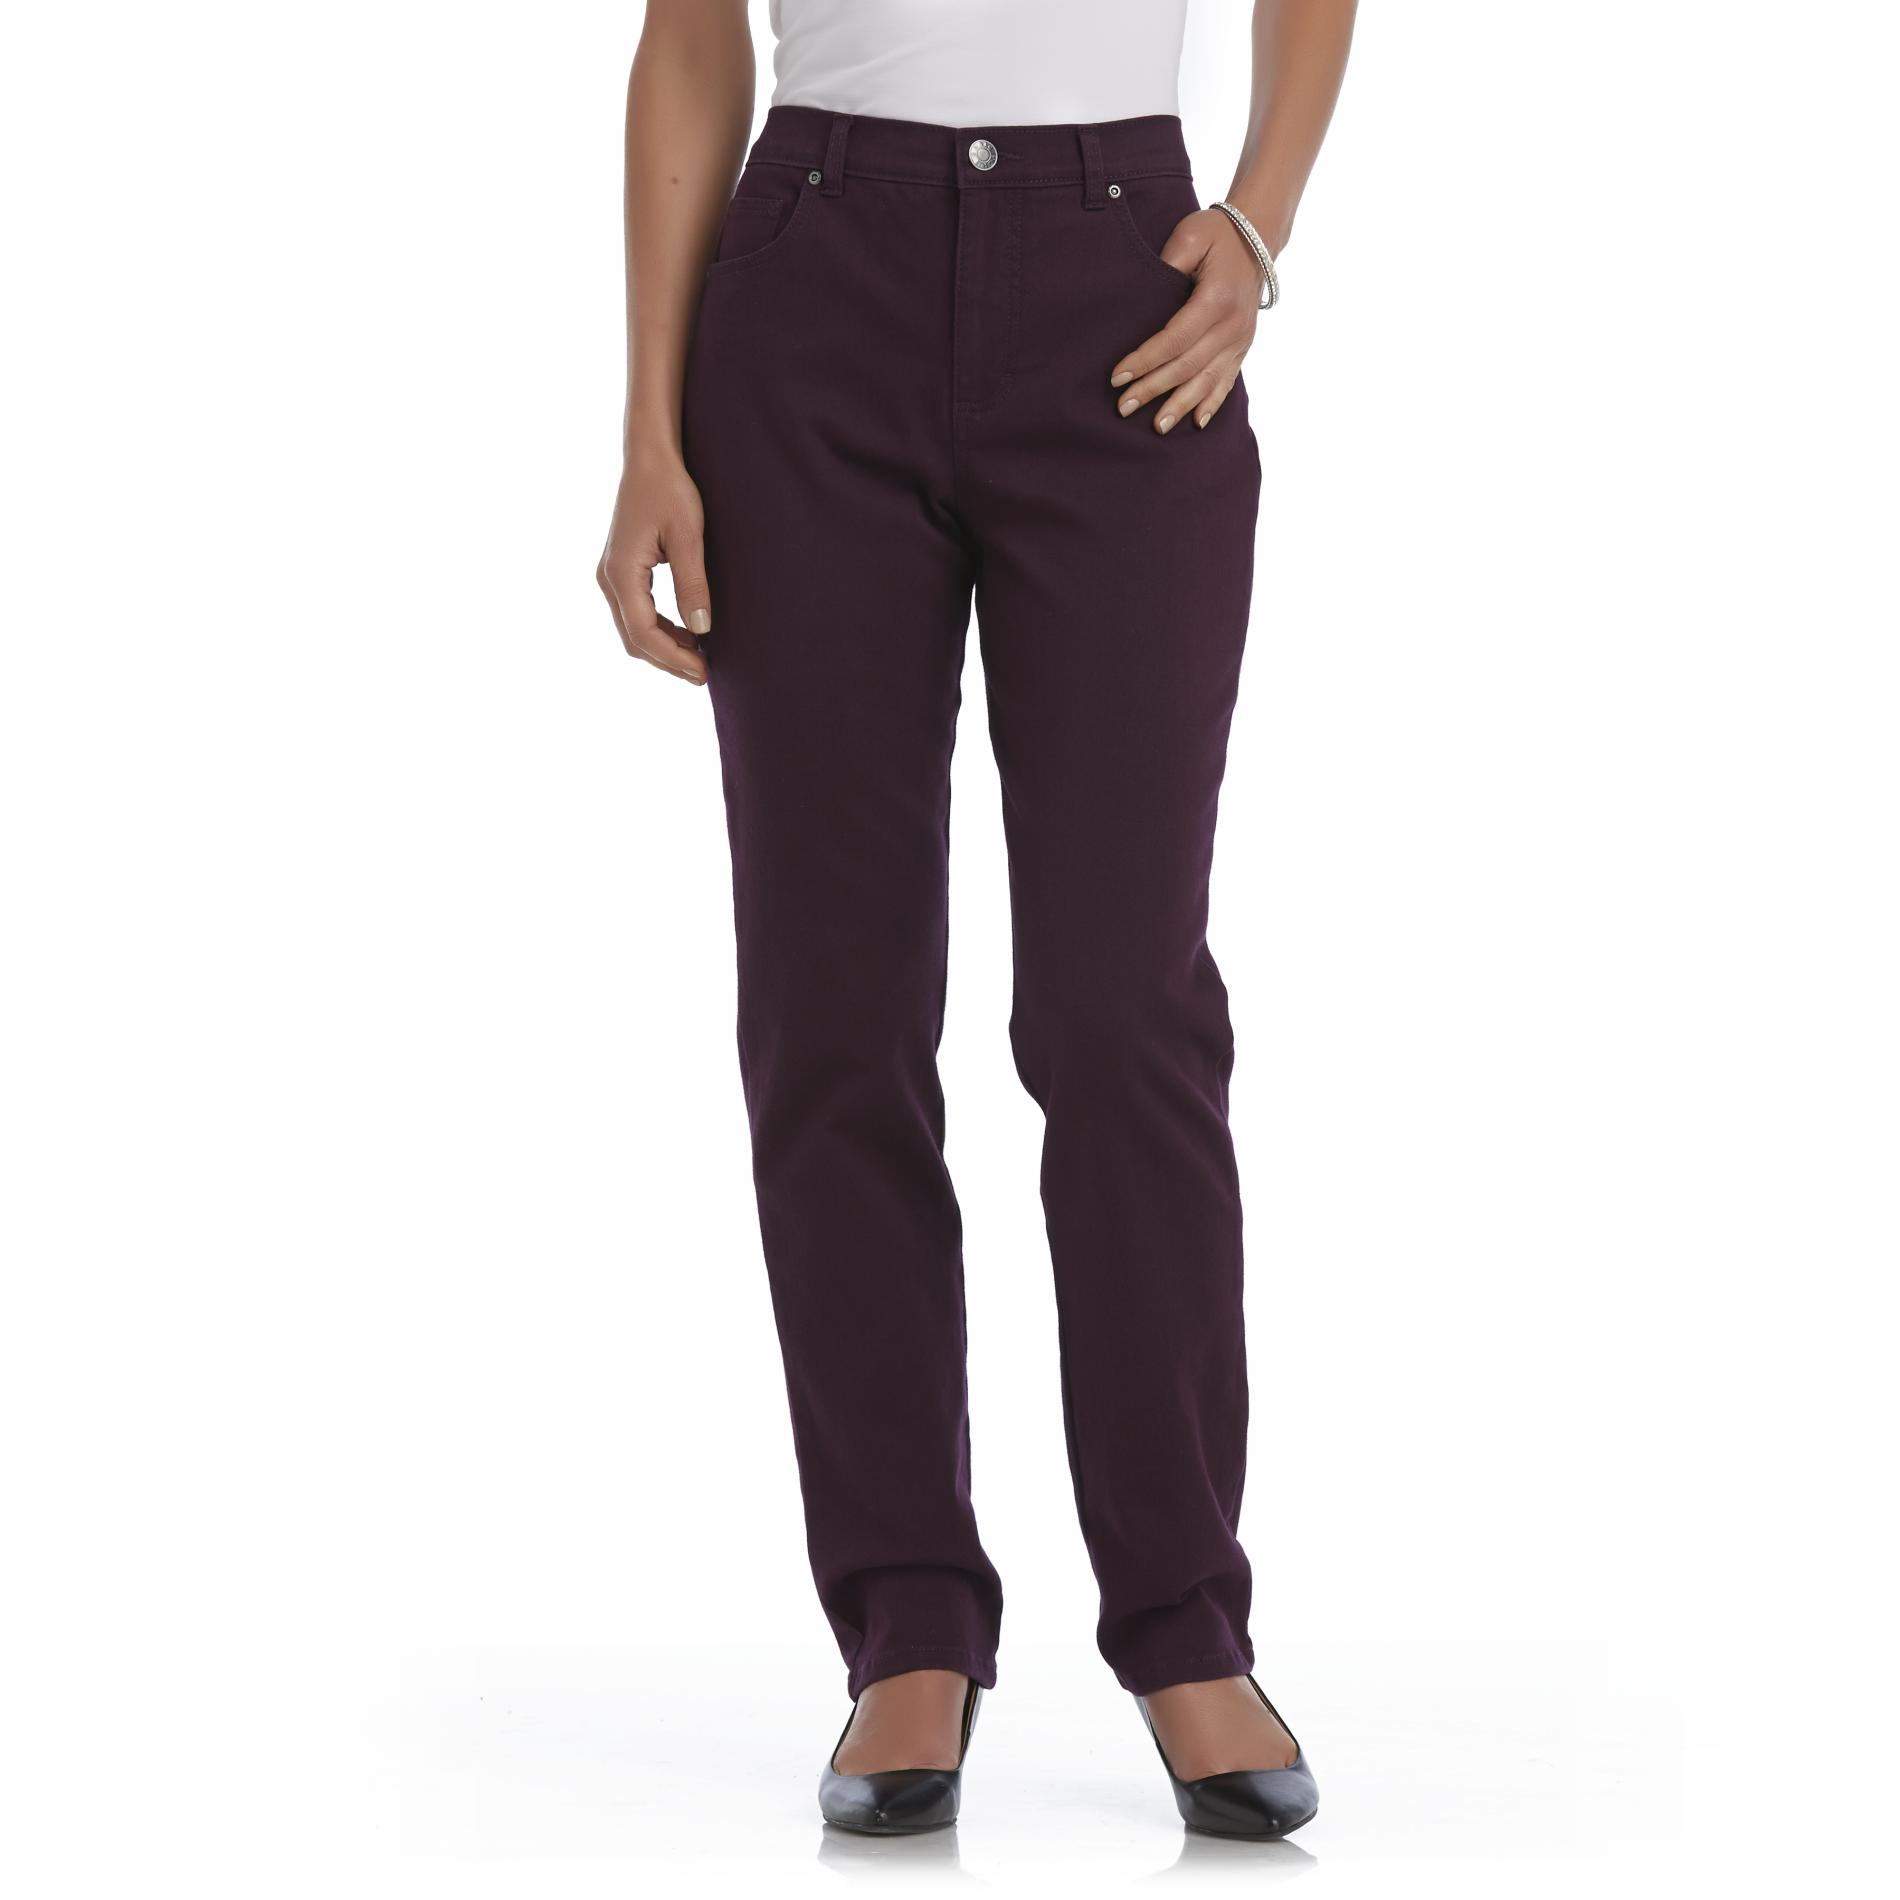 Basic Editions Women's Classic Fit Colored Jeans at Kmart.com